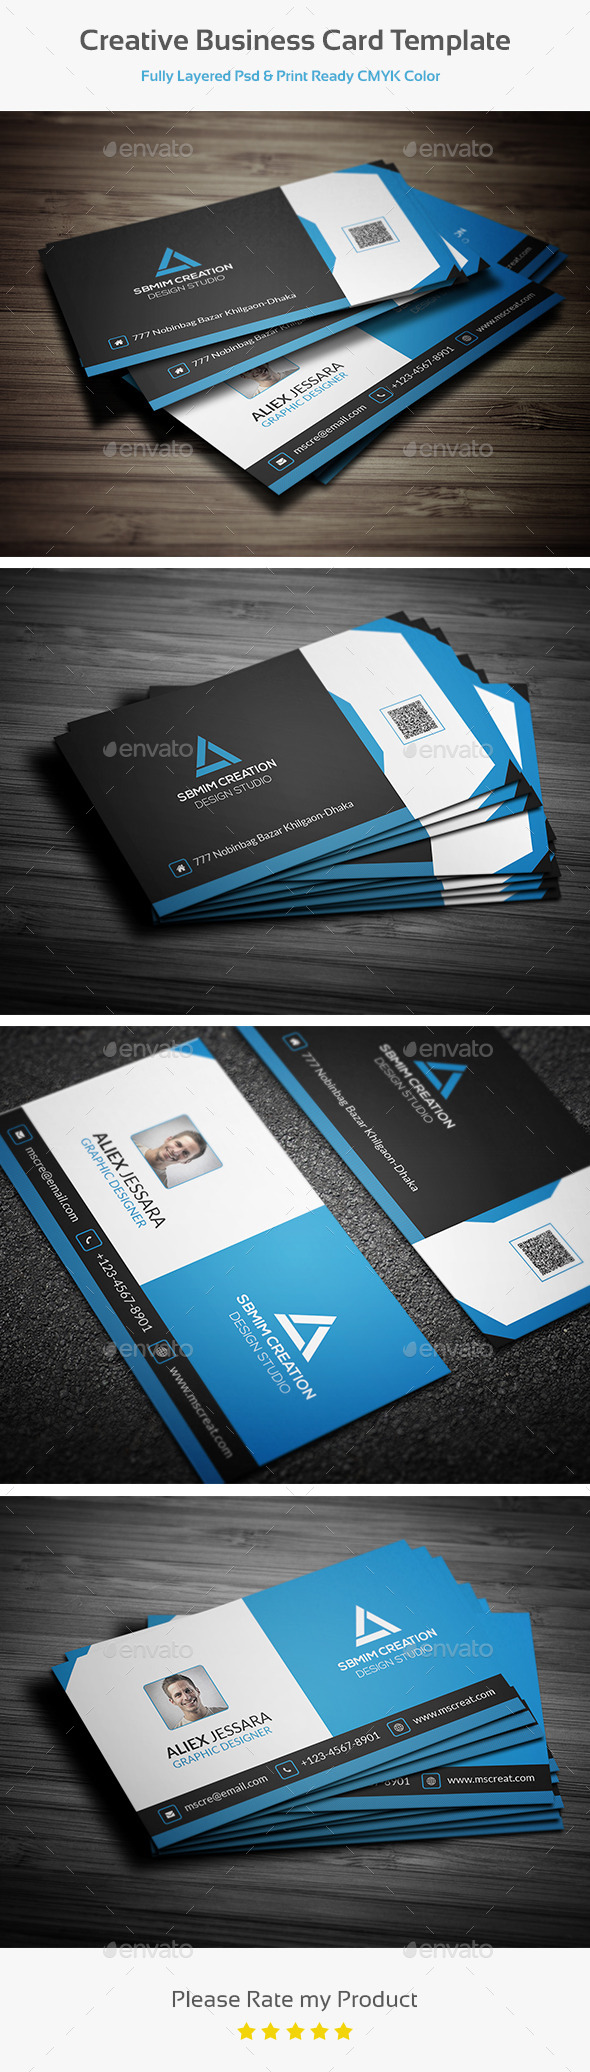 GraphicRiver Creative Business Card Template 10429902